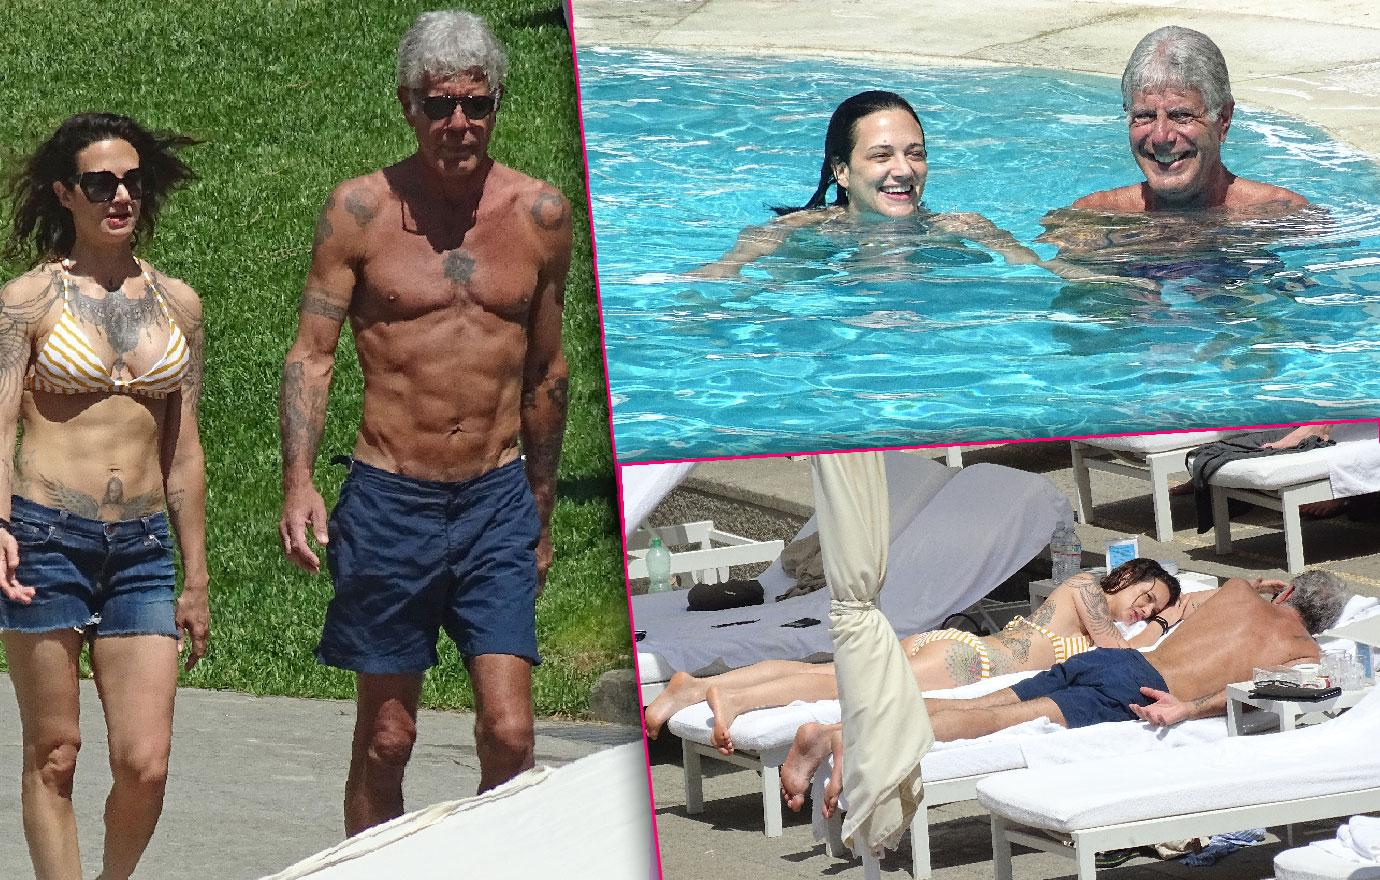 Anthony Bourdain And Asia Argento Show Off Amazing Abs